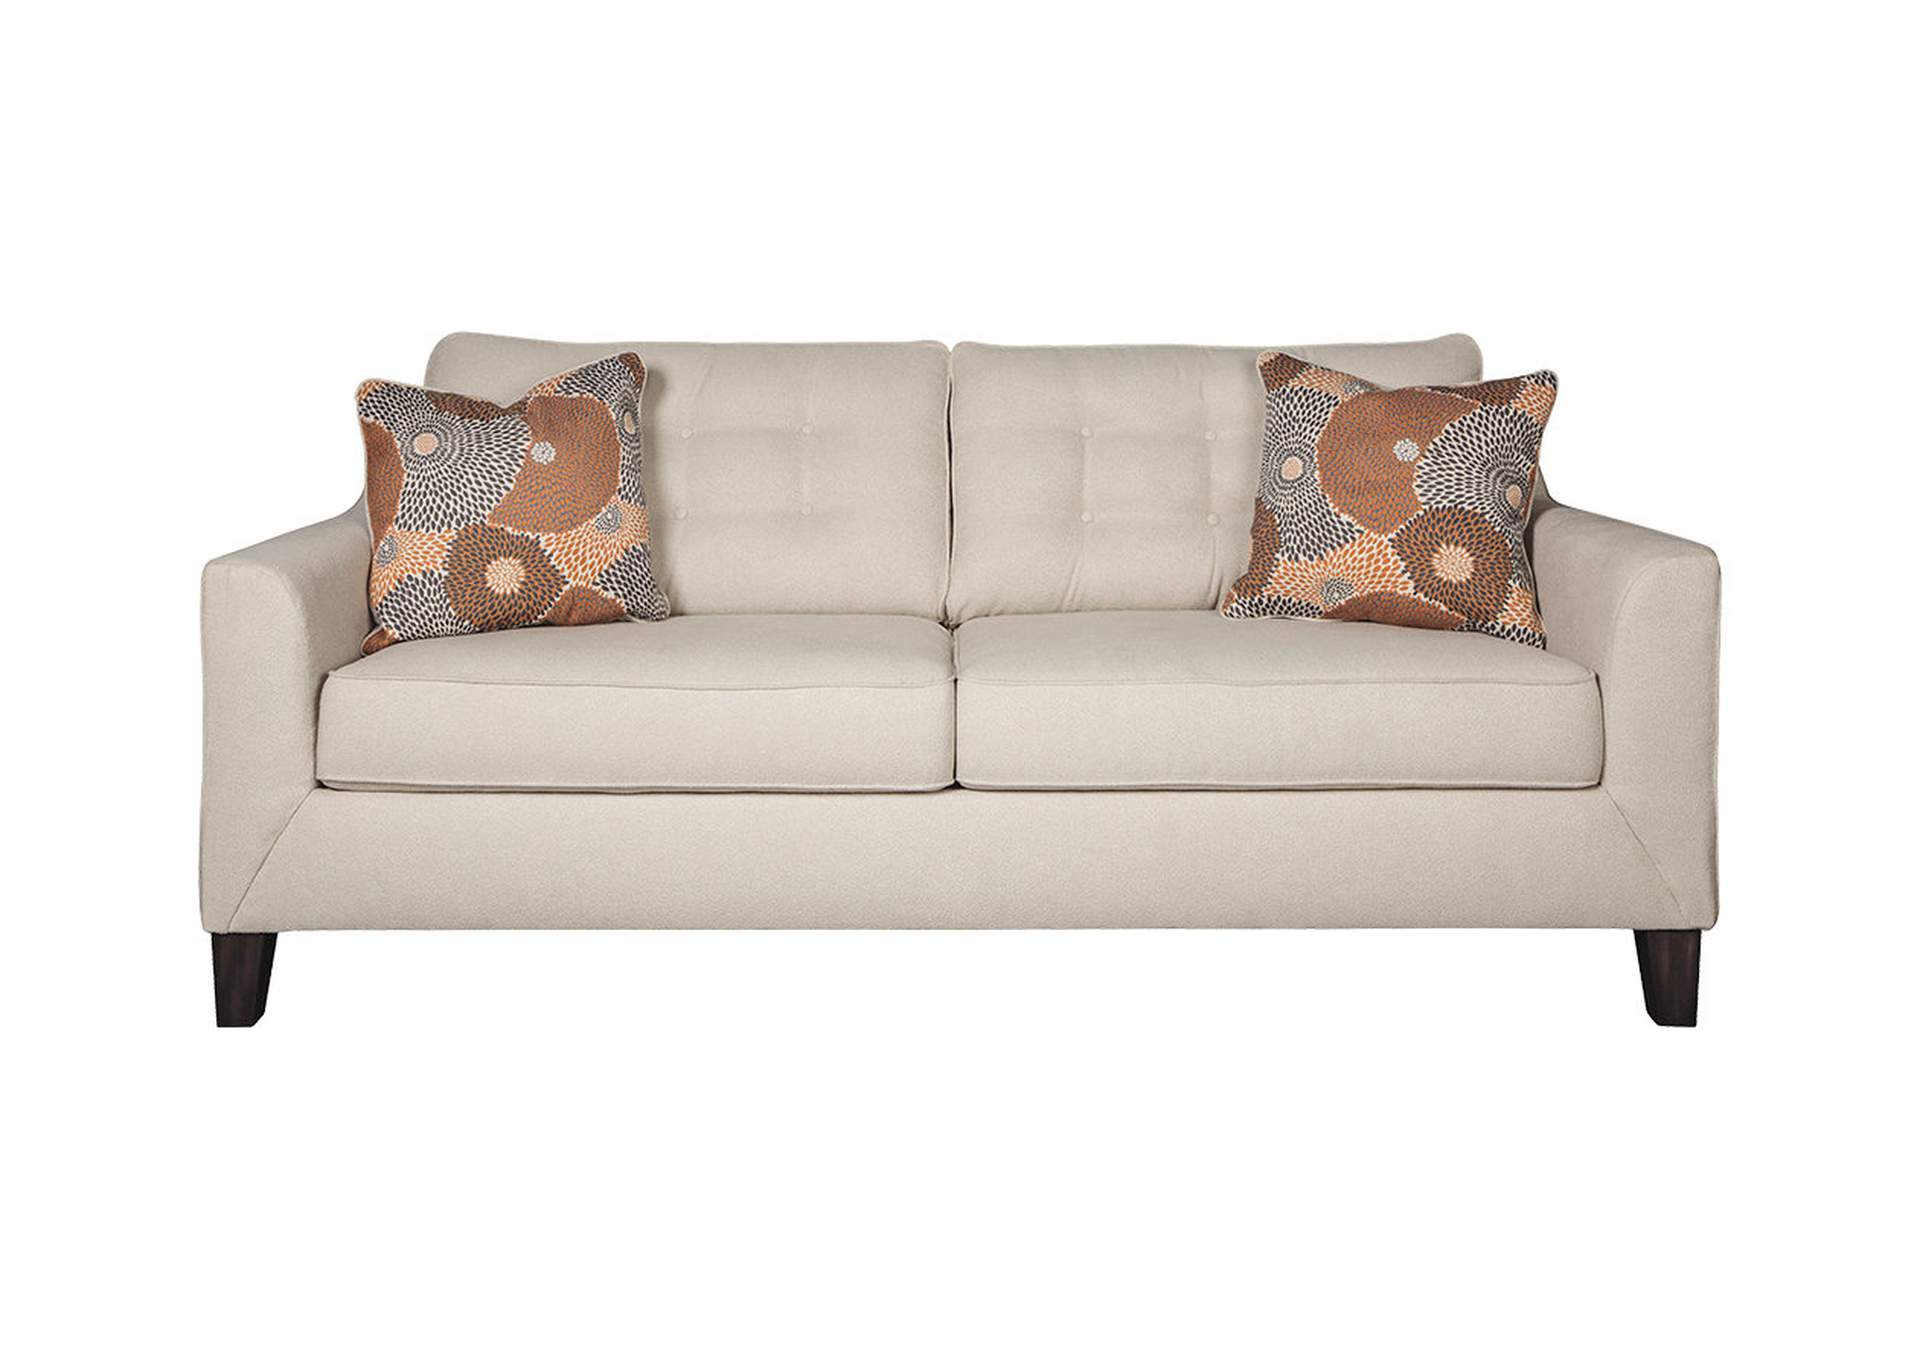 Benissa Alabaster Queen Sofa Sleeper,Signature Design By Ashley